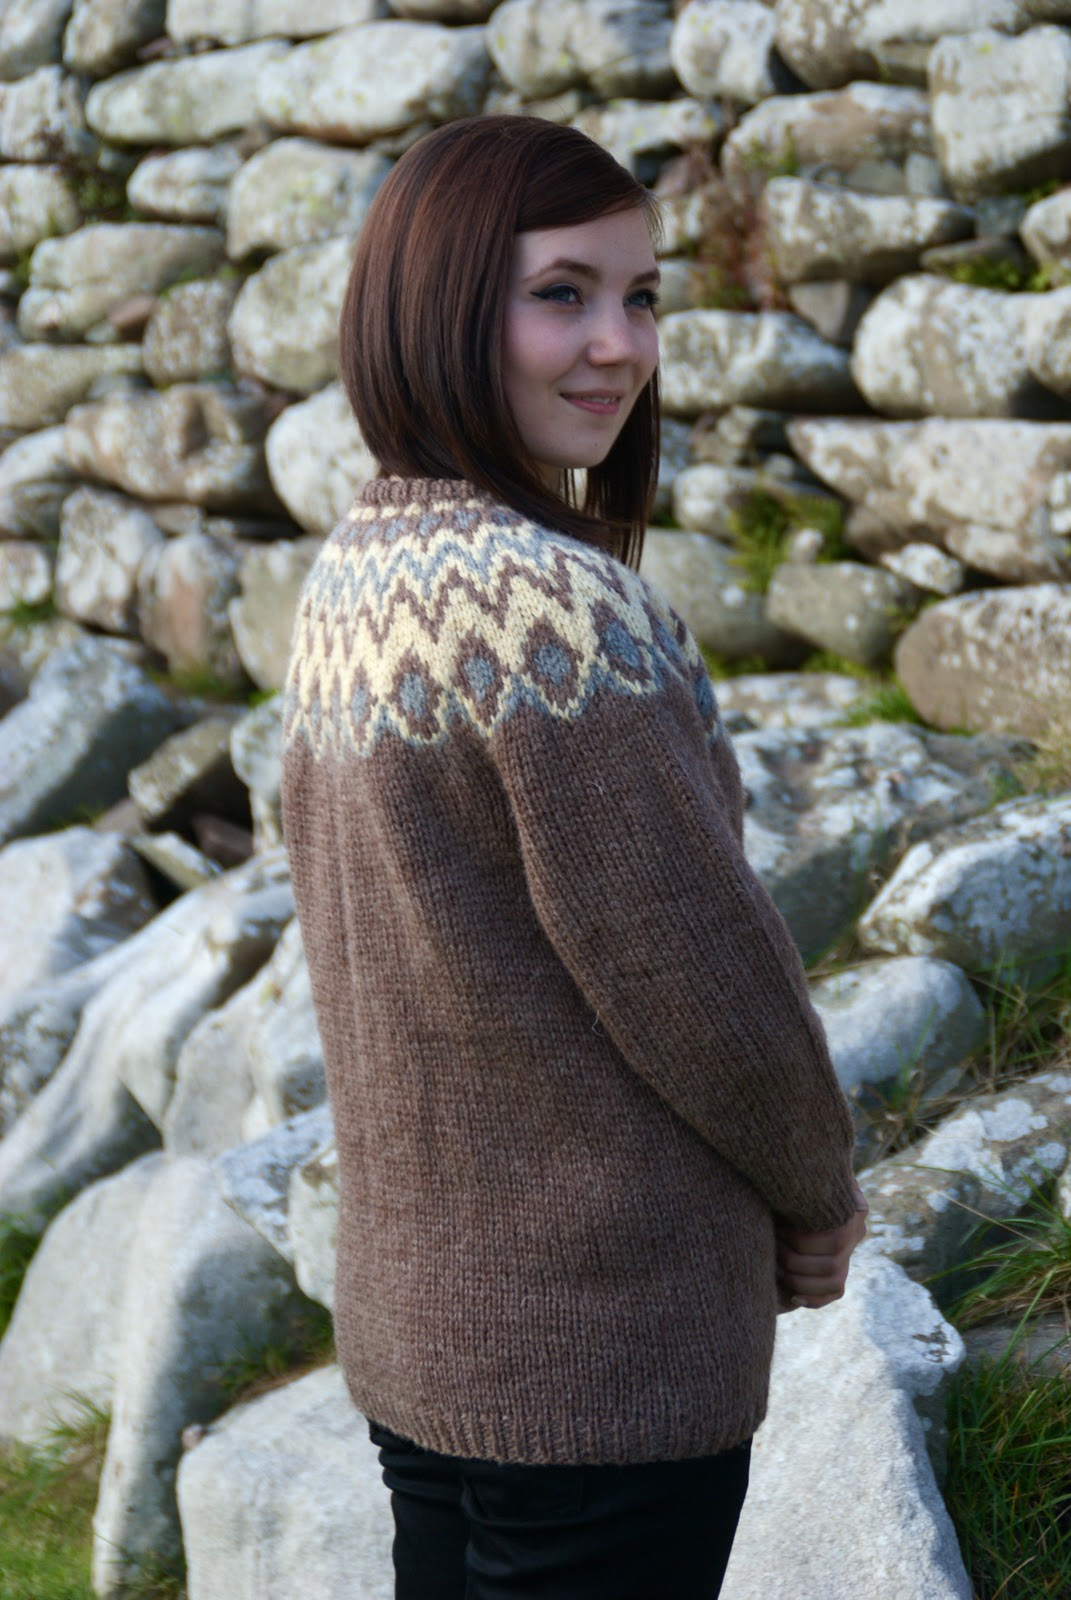 Free pattern at The Knitter.co.uk